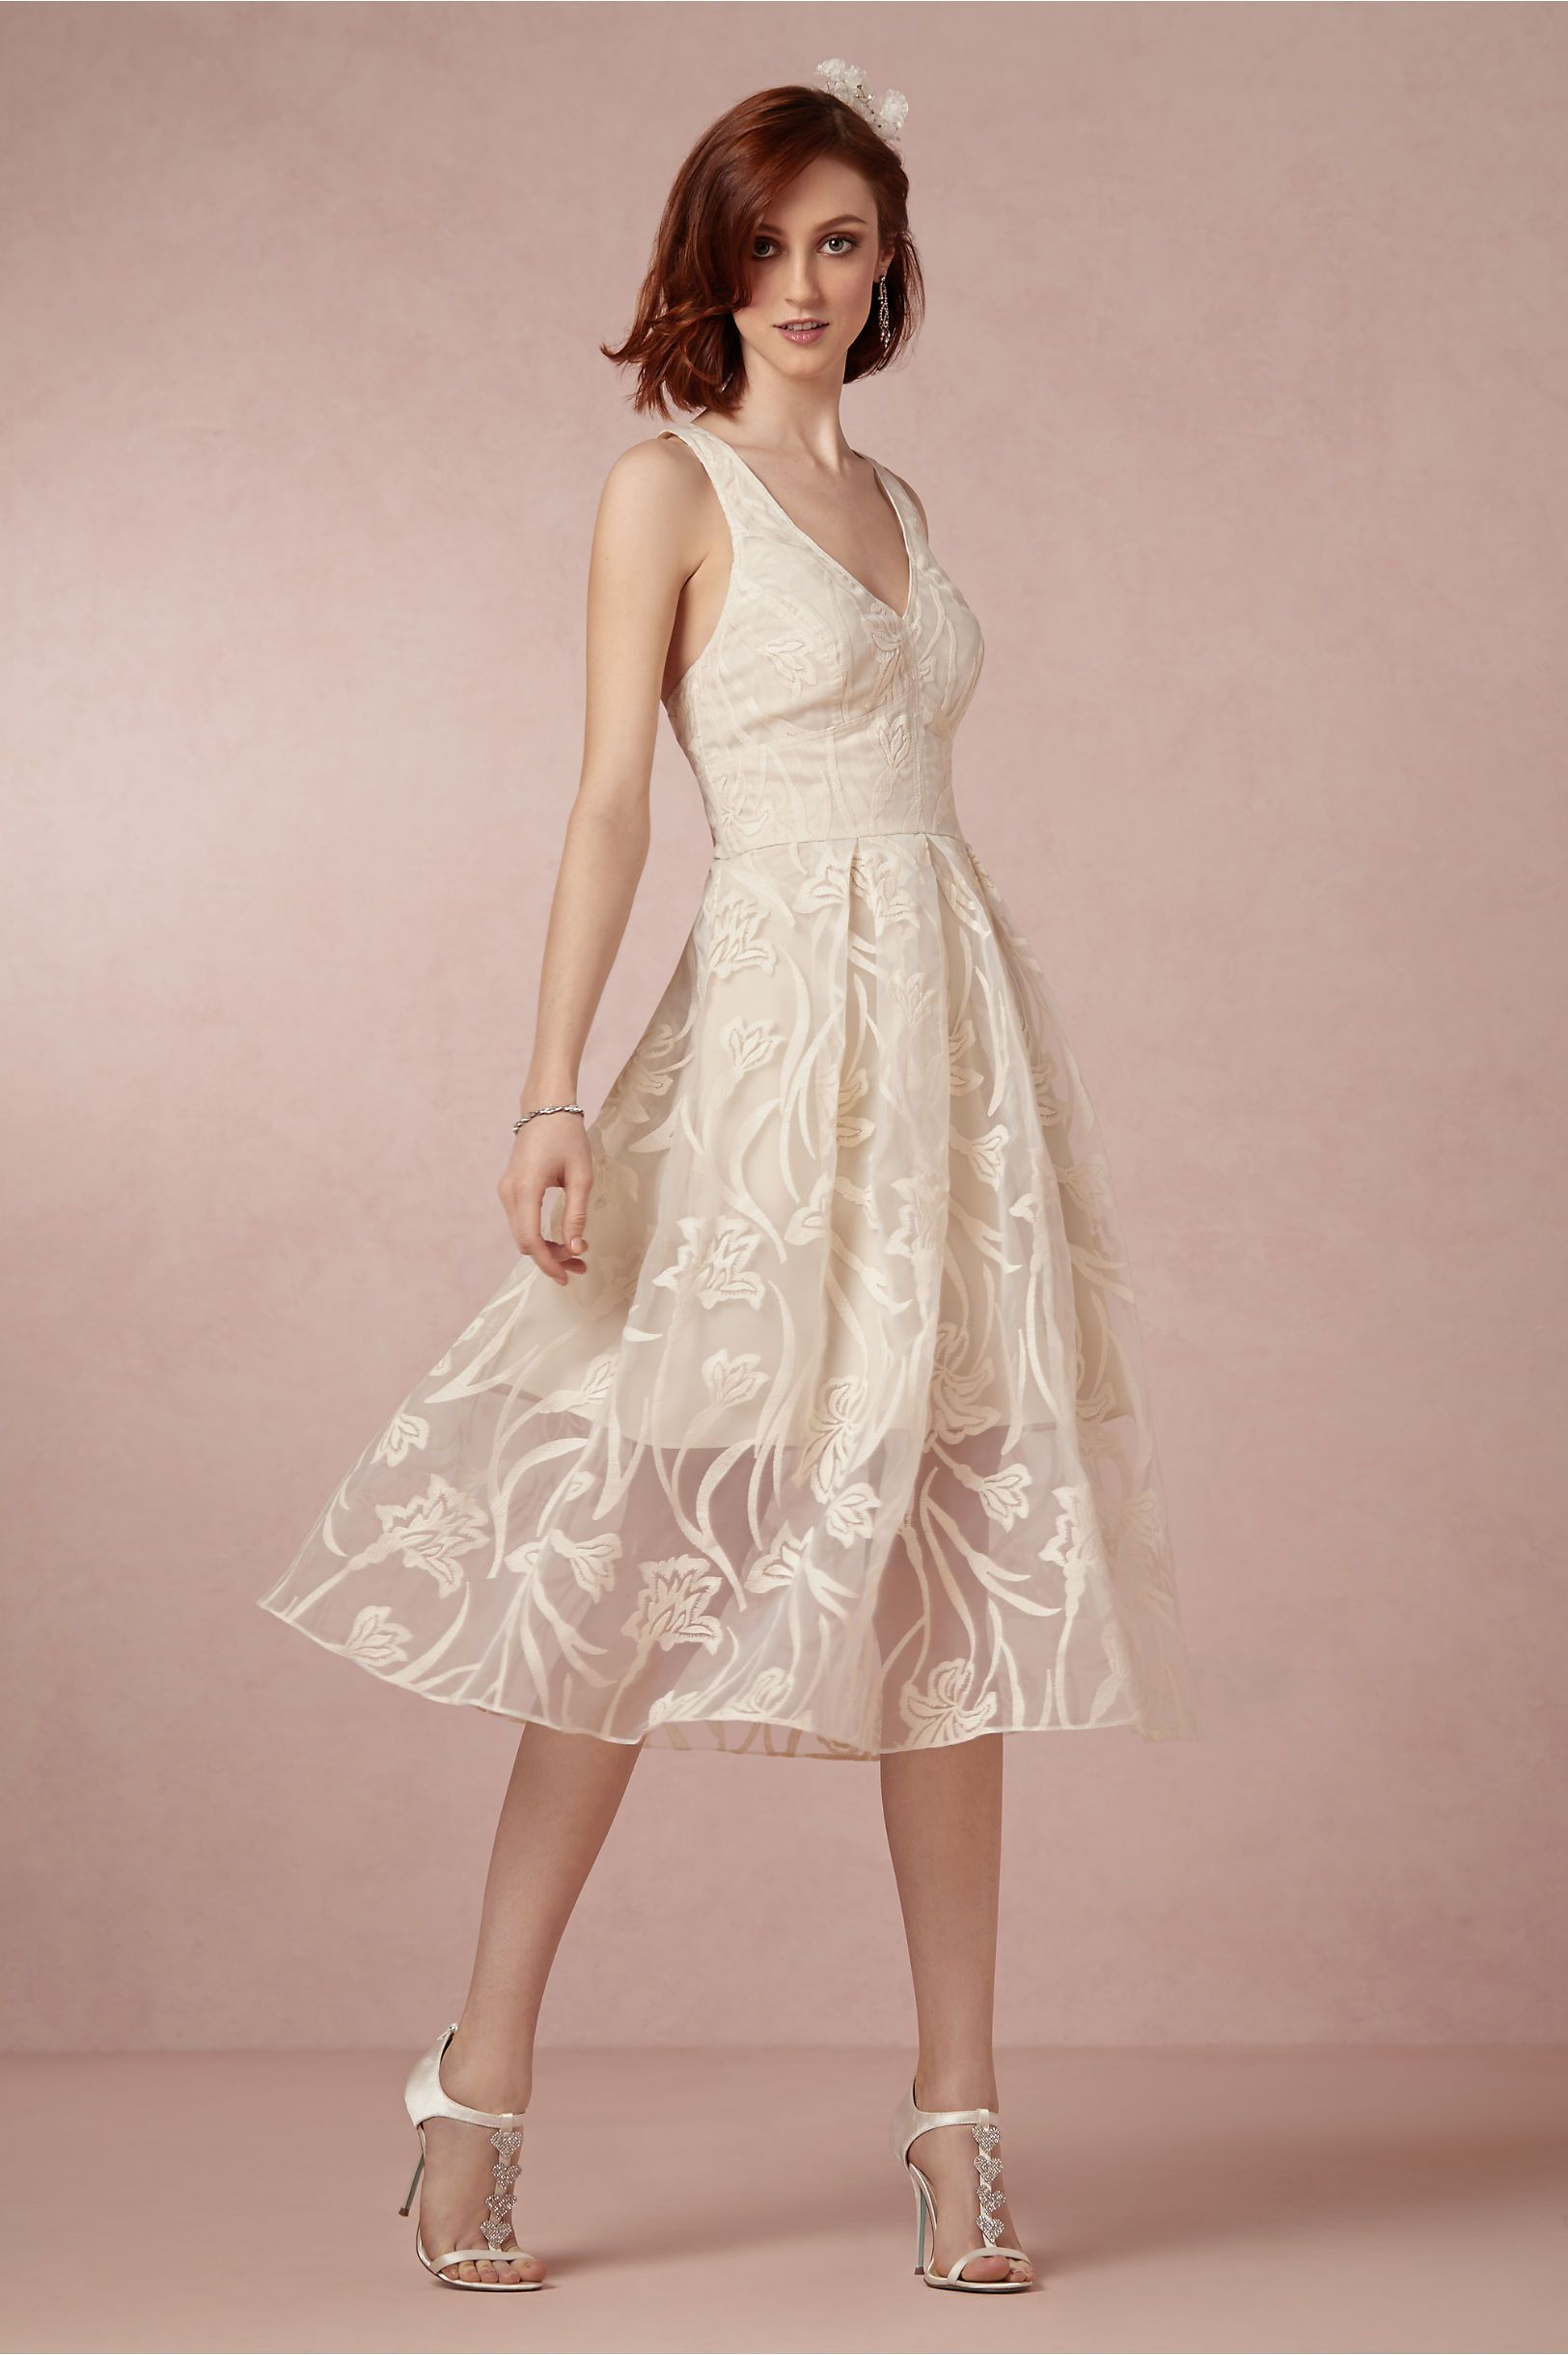 Fresh Blossoms Dress from BHLDN | My Style Pinboard | Pinterest ...